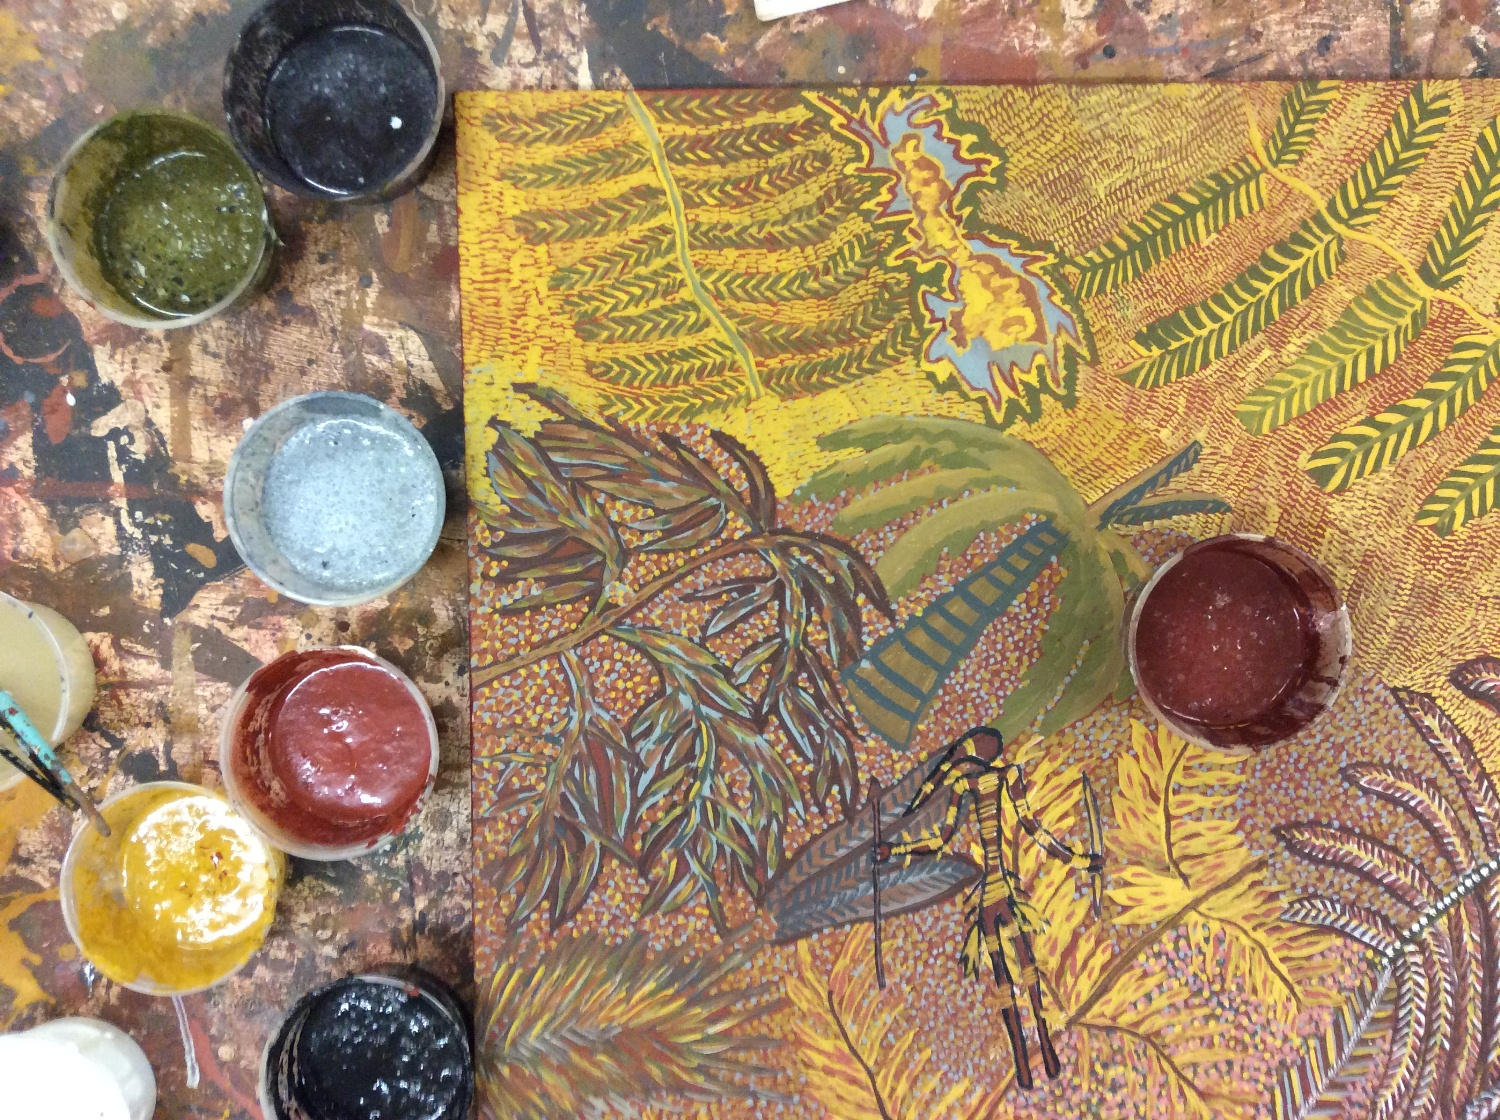 Artwork by Mary Puntji Clement in progress with ochres in the Kira Kiro Art Centre Studio. © AGWA 2015